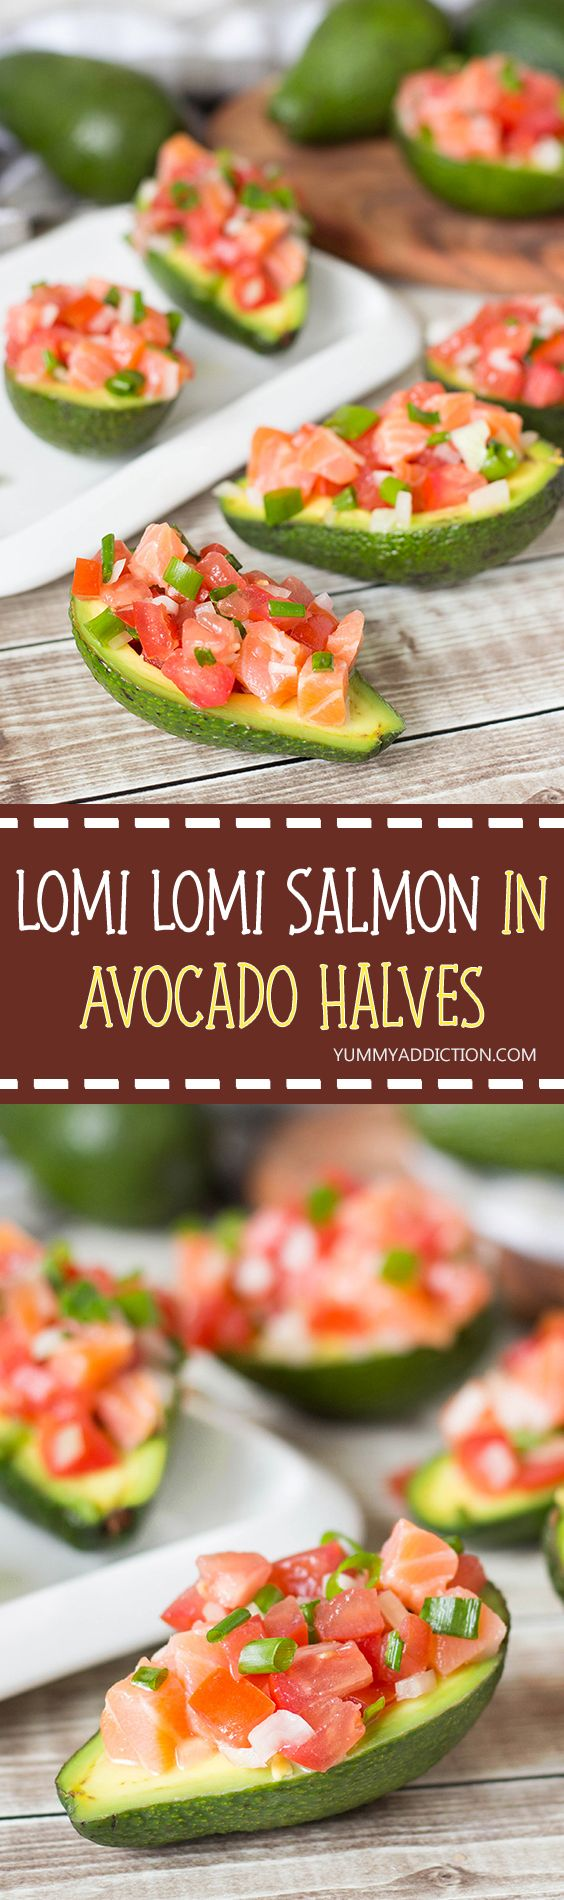 3793 best food images on pinterest cooking recipes cooking lomi lomi salmon is a famous hawaiian dish served alongside roasted meats or forumfinder Images